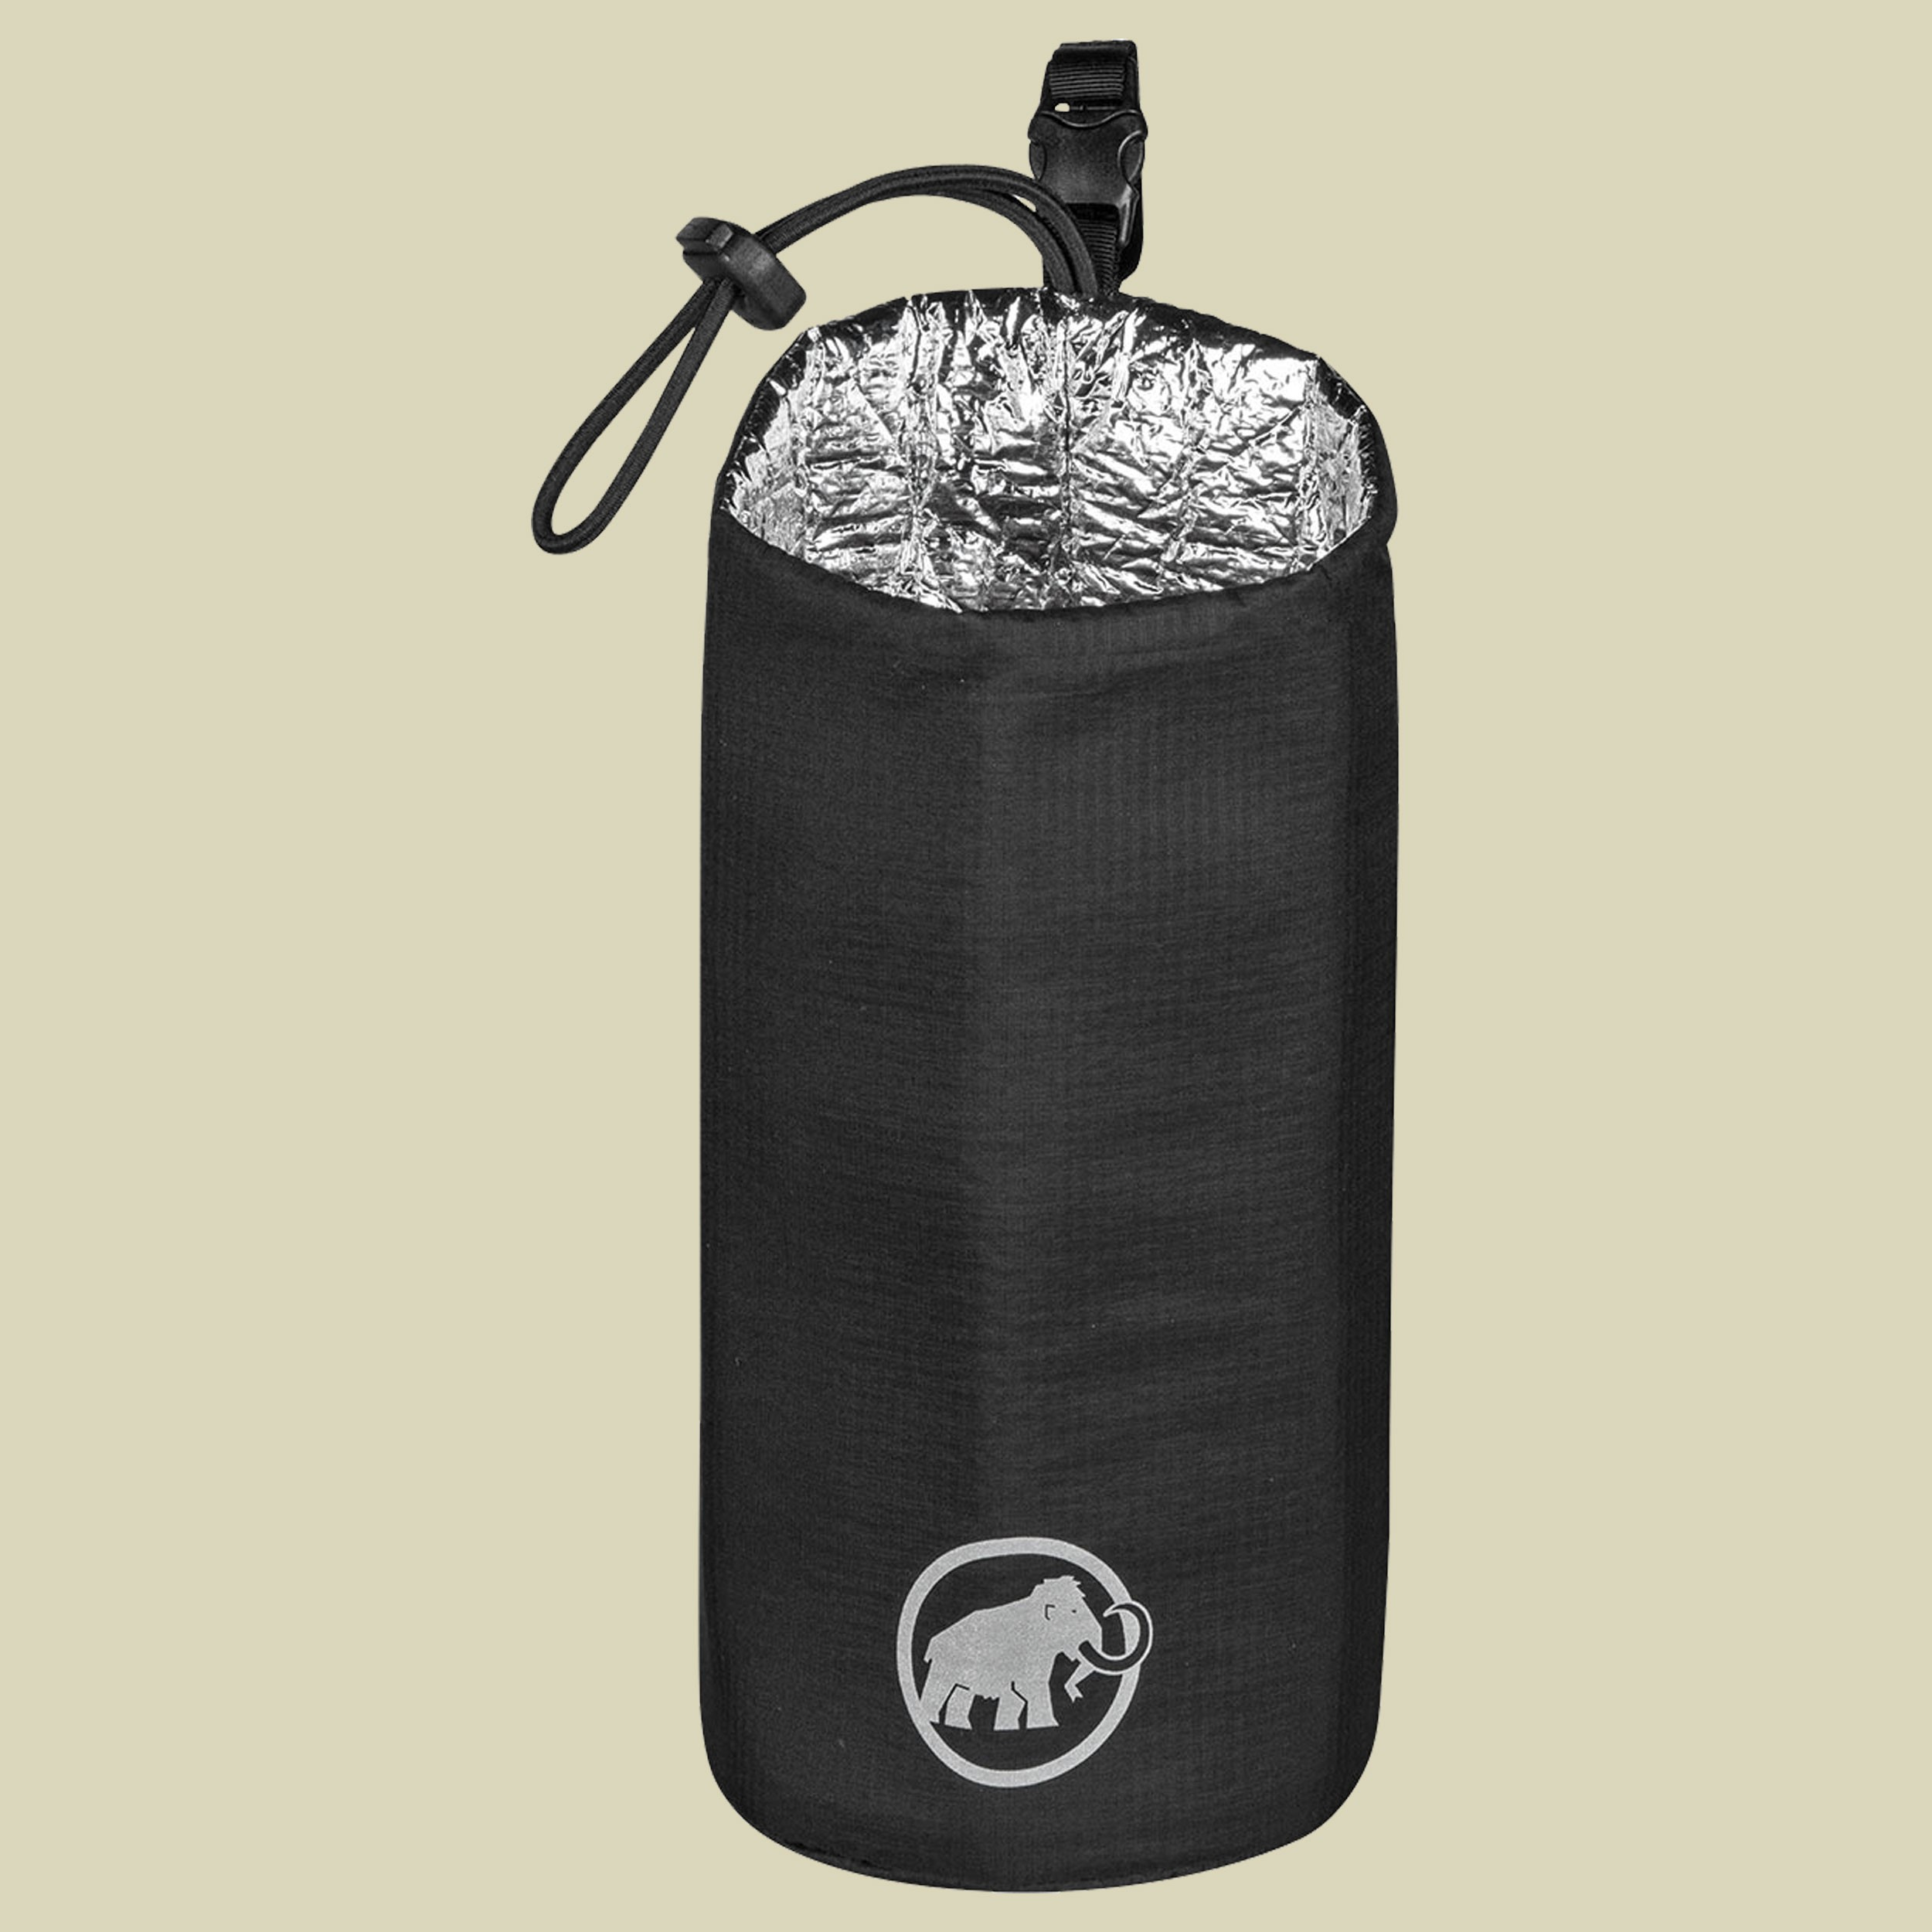 mammut_add_on_bottle_holder_black_2530_00100_0001_fallback